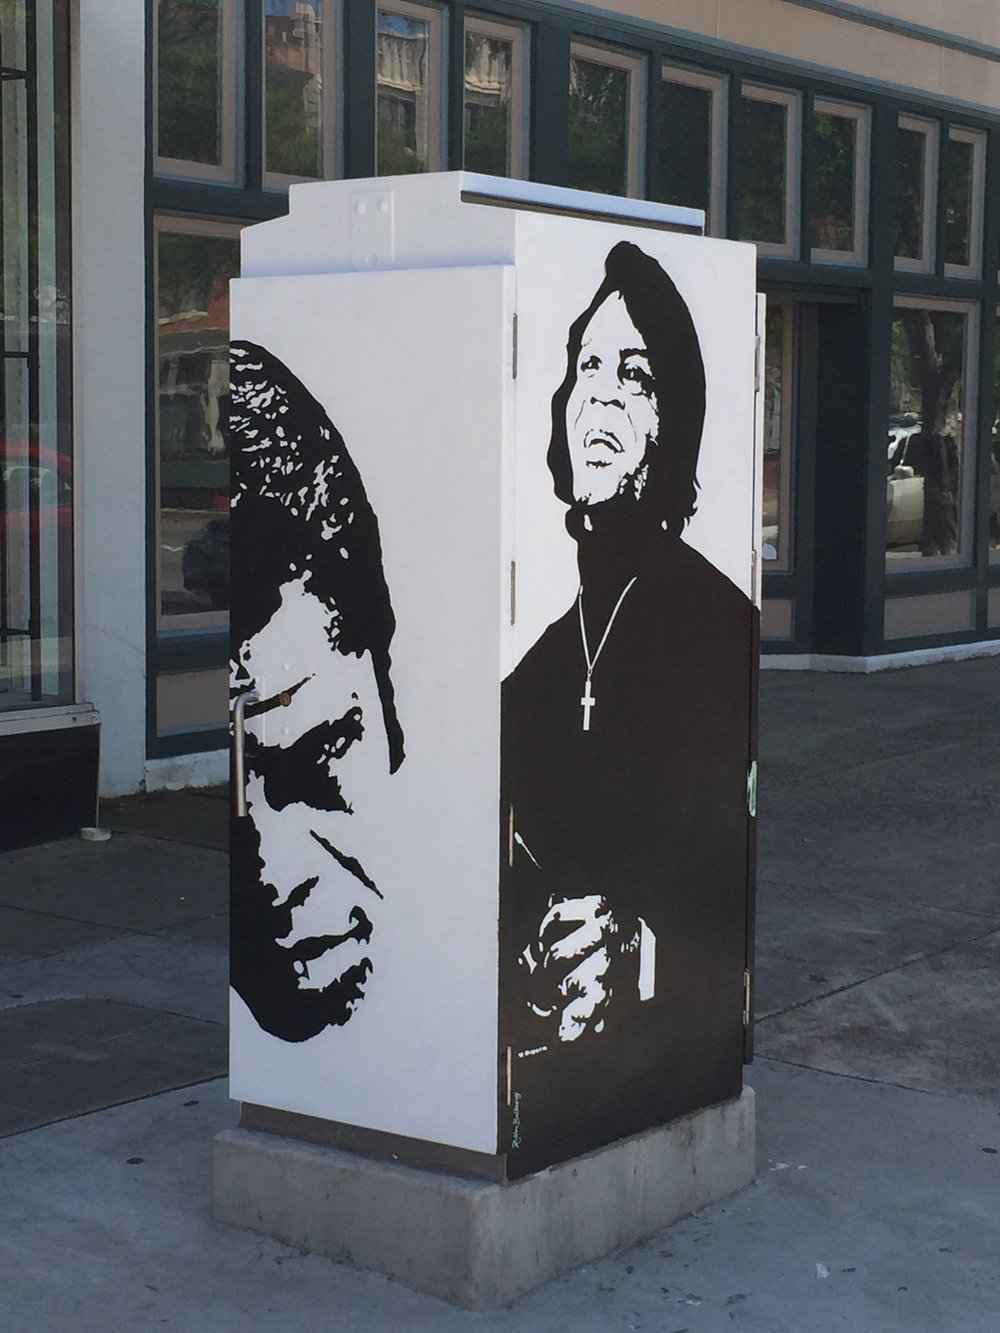 This traffic box  public art  was commissioned to be painted in tribute to the late great Godfather of Soul in 2015. Ms. Robbie Pitts Bellamy is the artist. Photo by Beachbluez